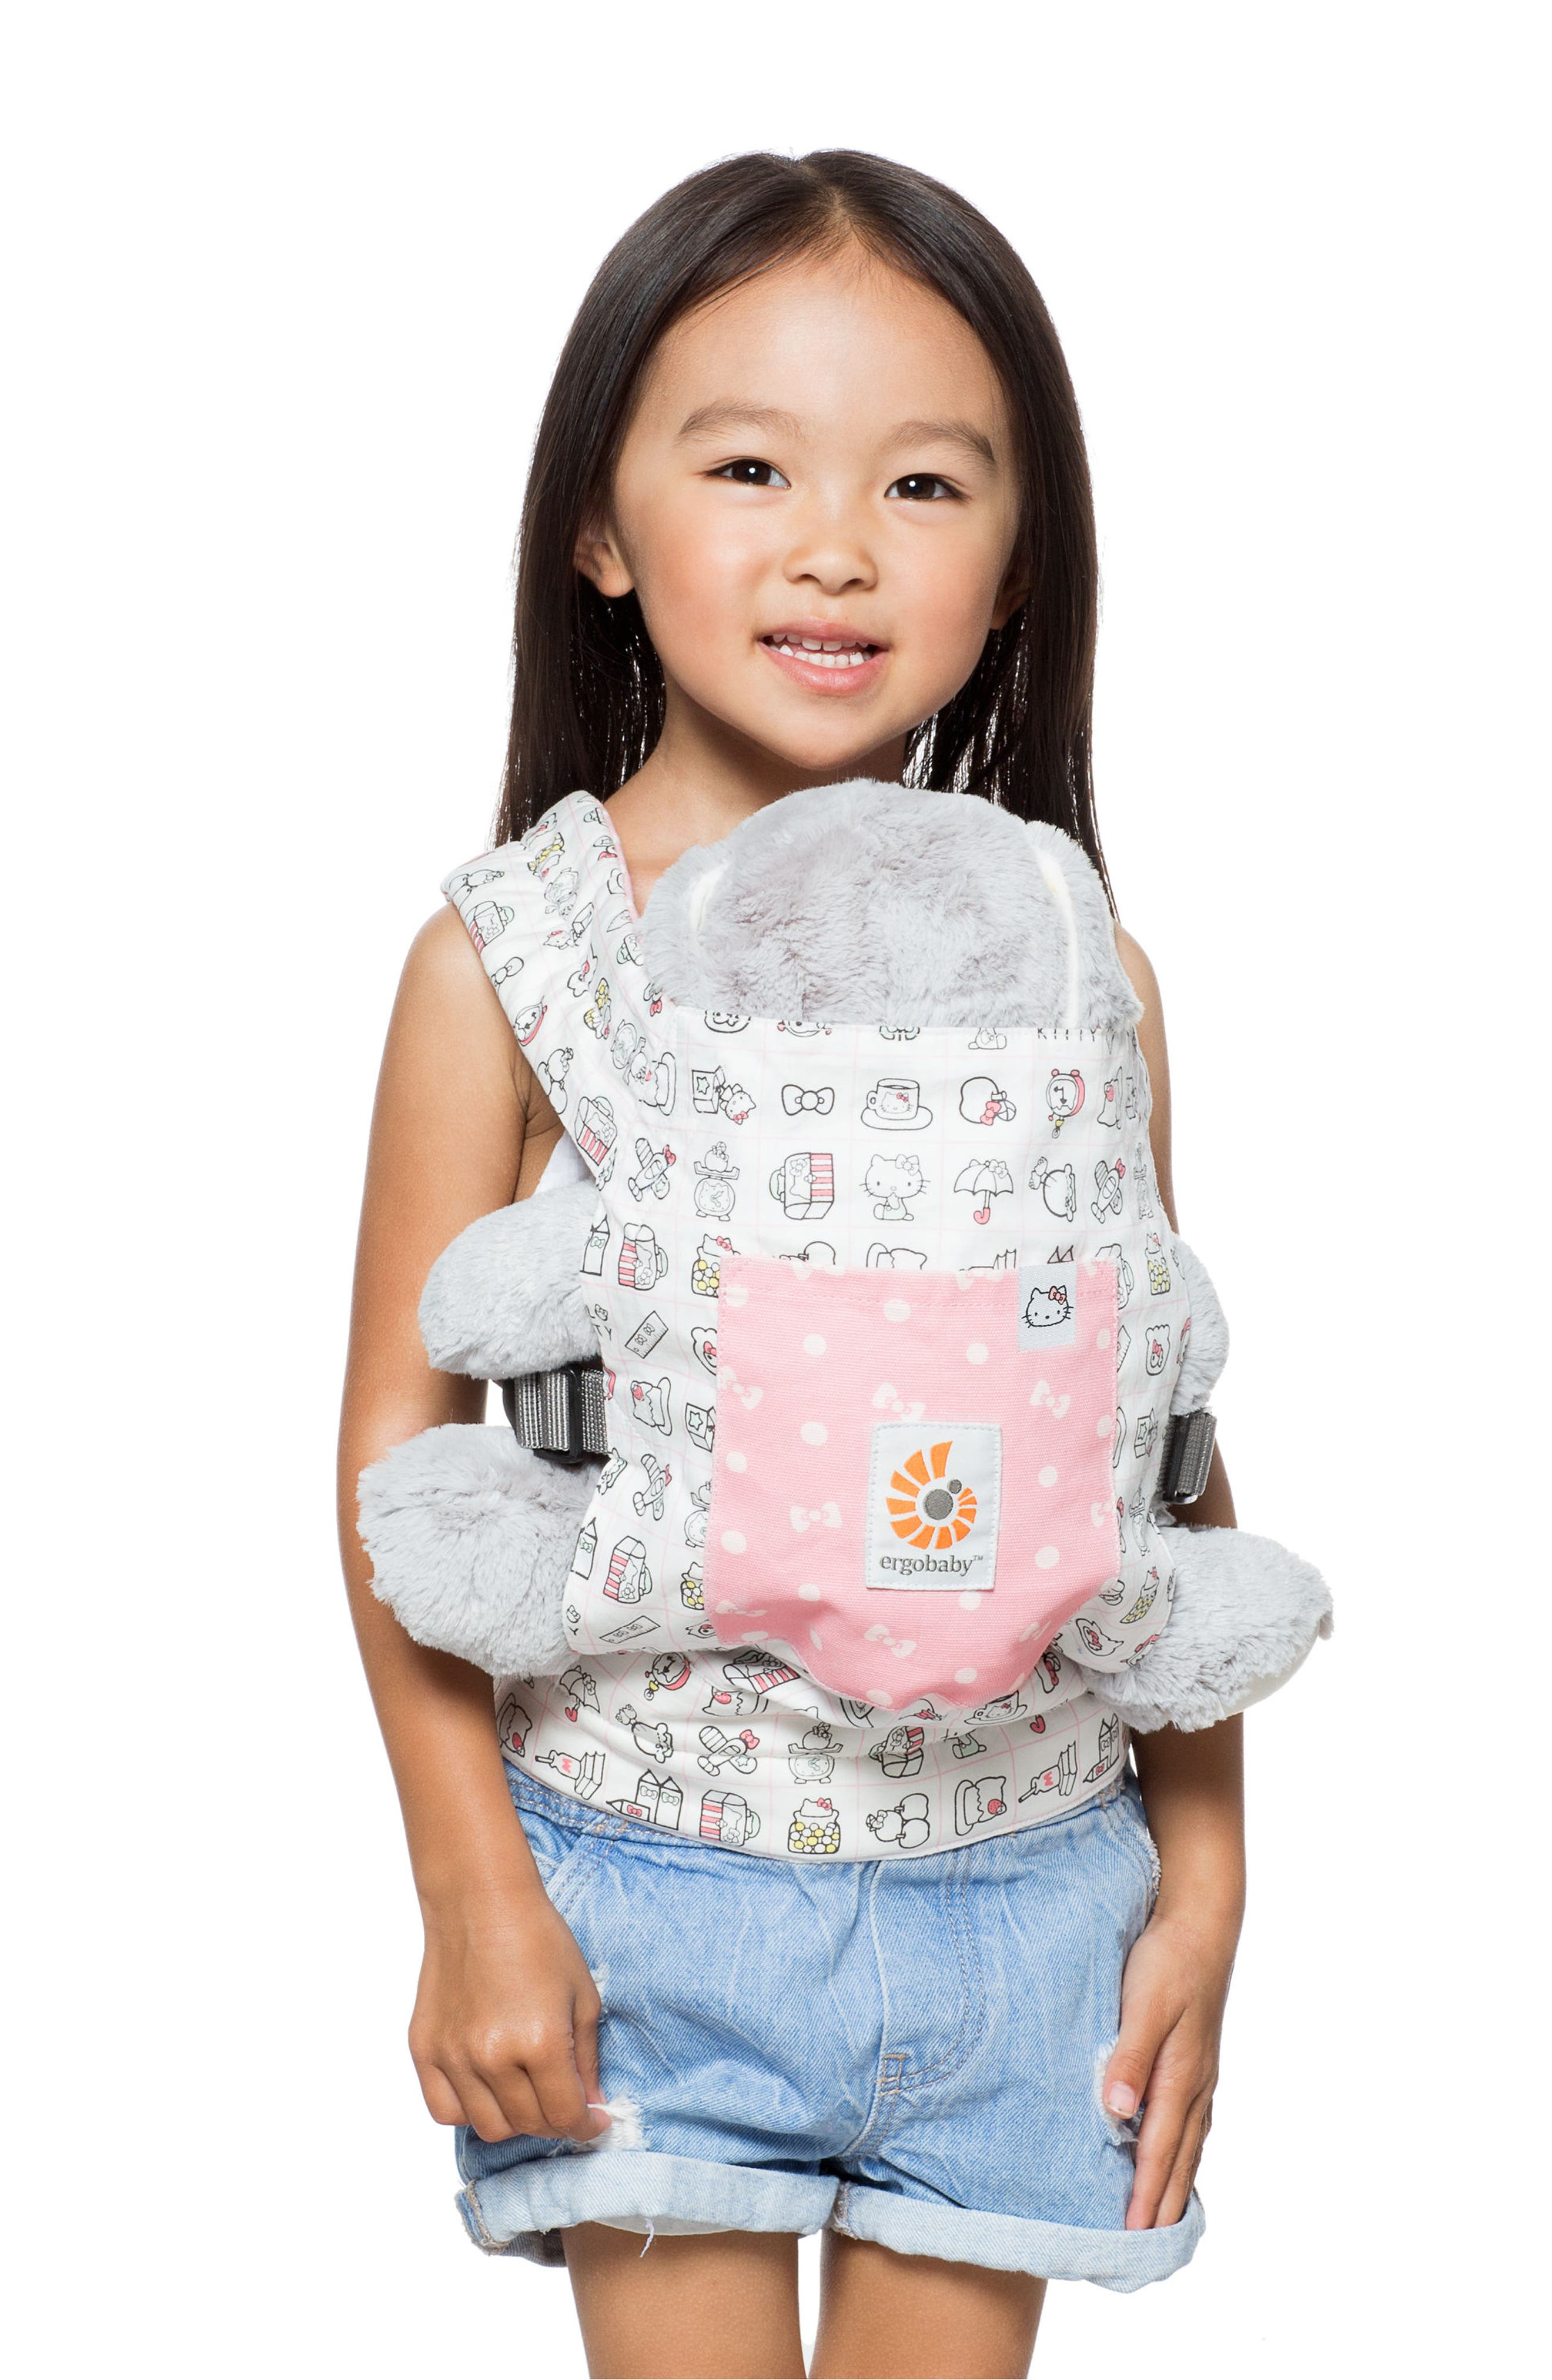 x Hello Kitty<sup>®</sup> Doll Carrier,                             Alternate thumbnail 3, color,                             DOODLES